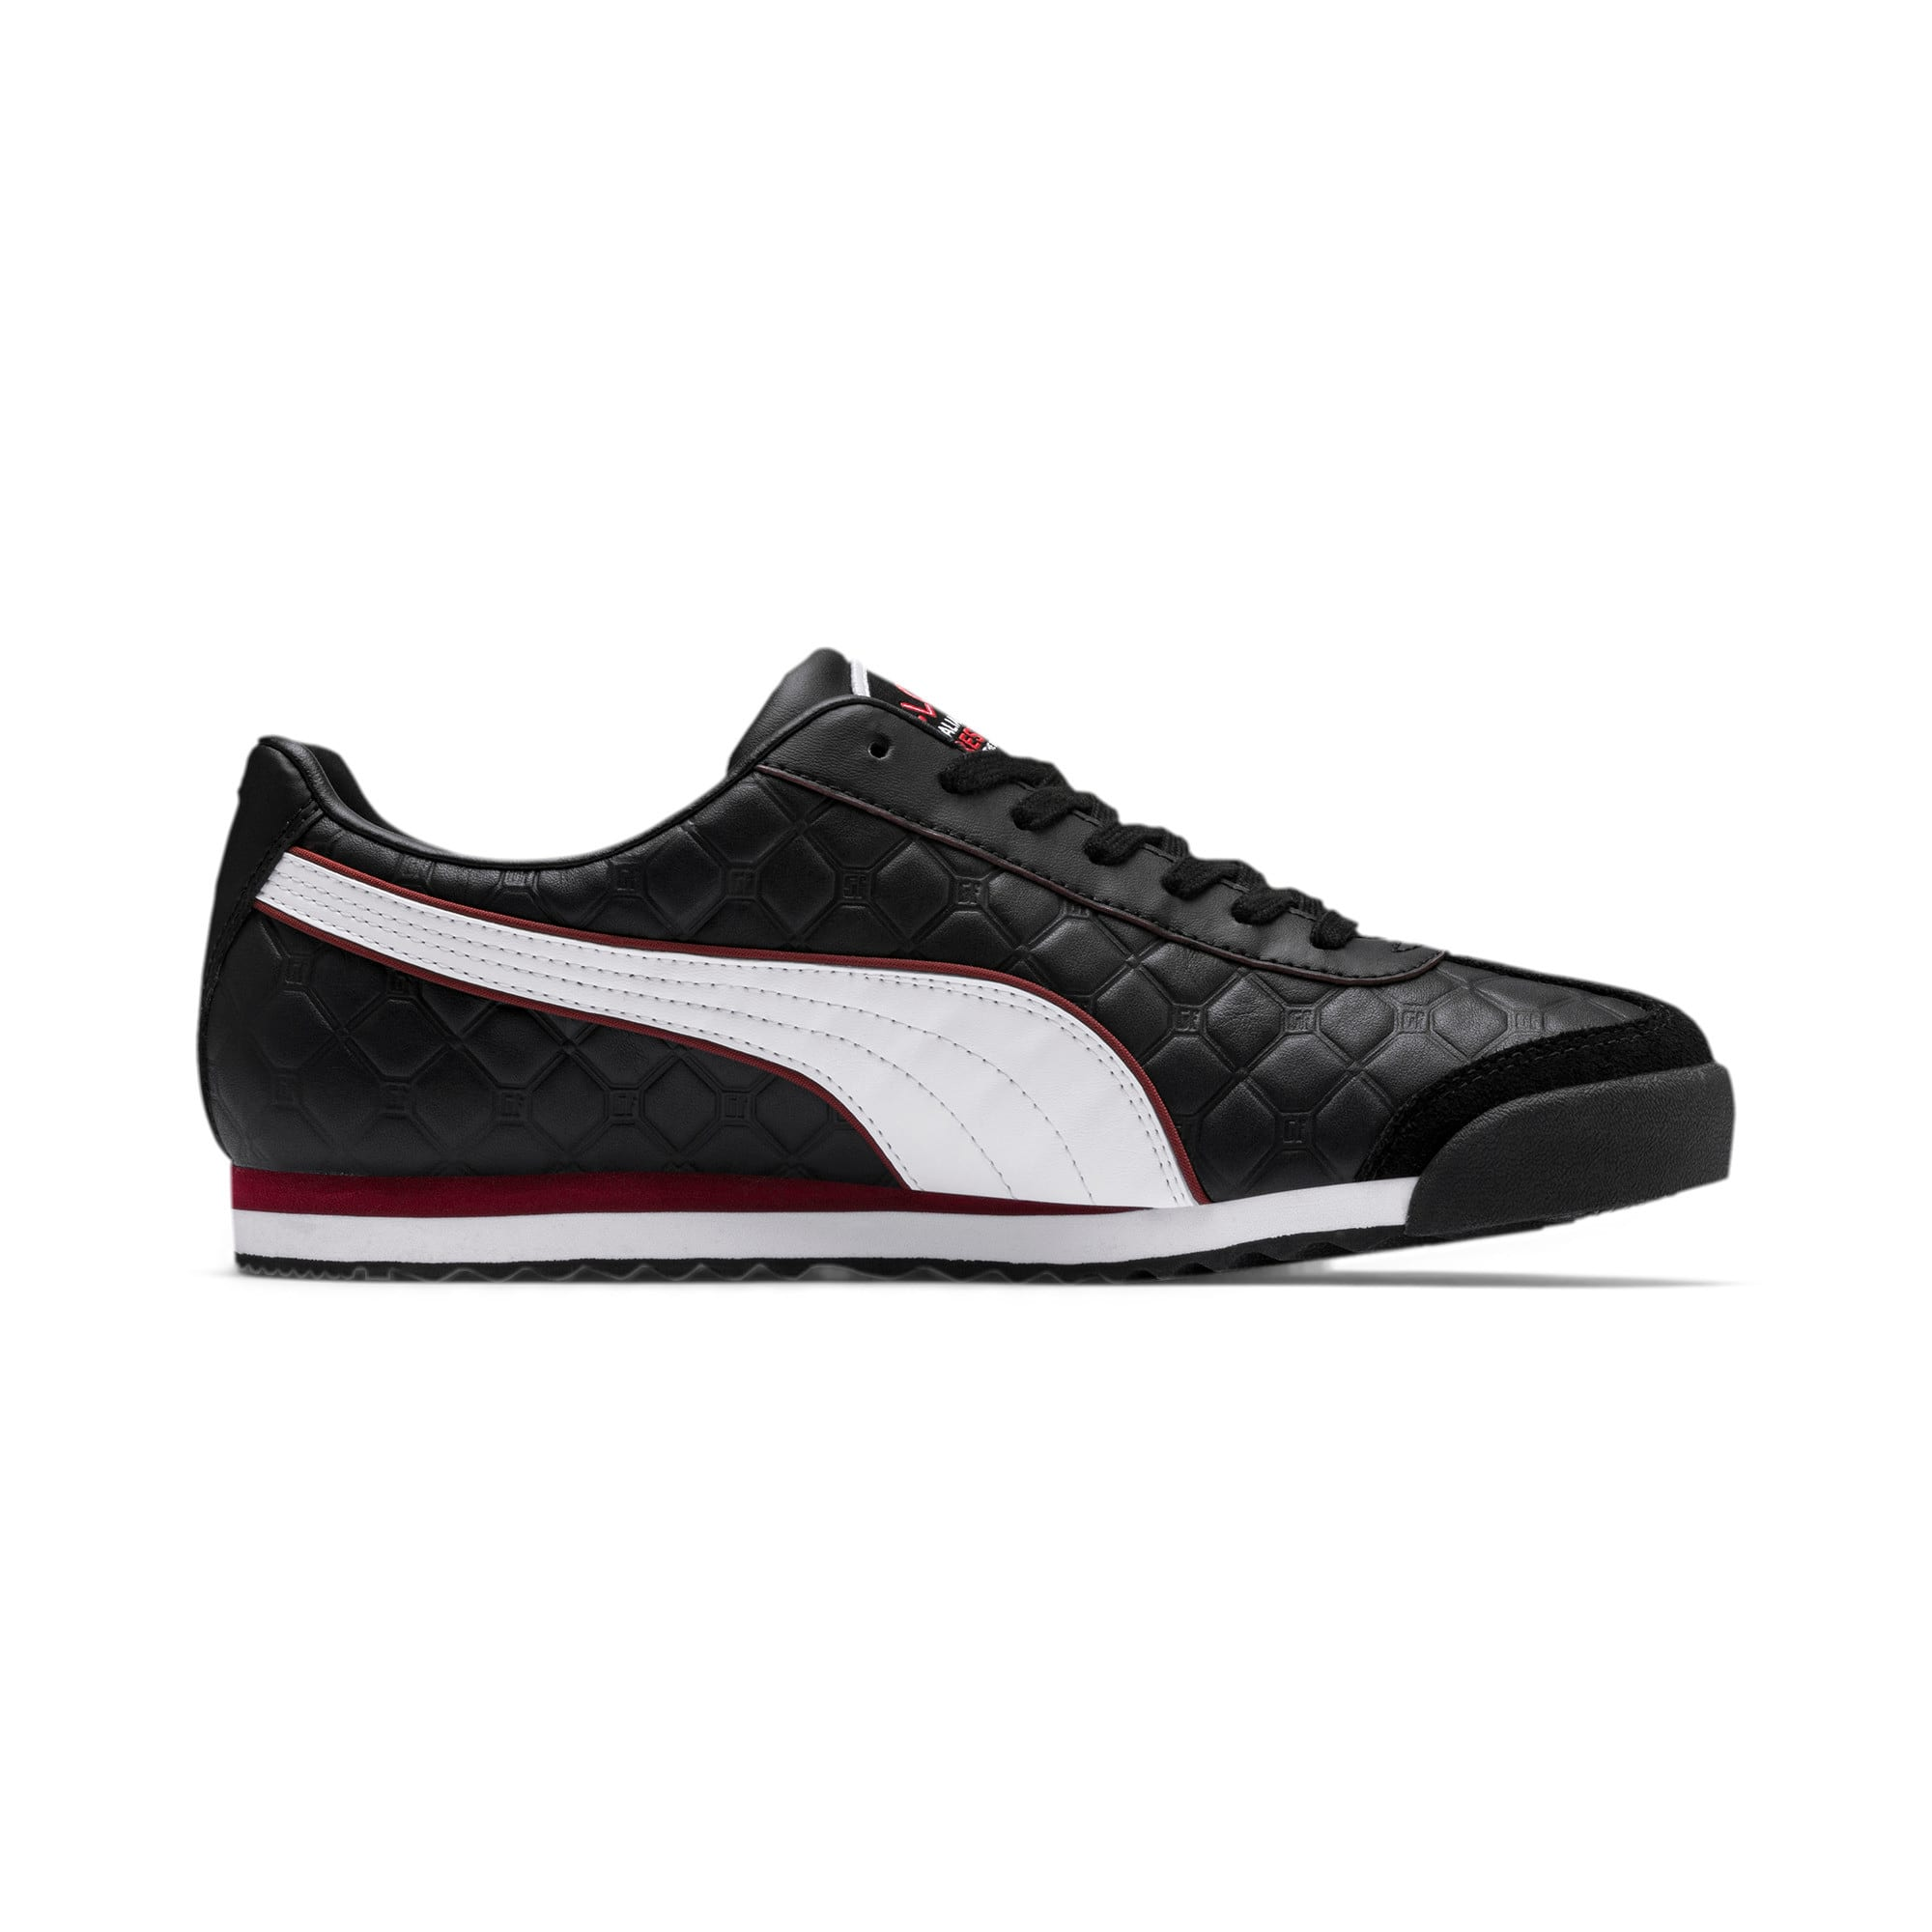 Thumbnail 5 of Roma x The Godfather LOUIS Herren Sneaker, Puma Black-Fired Brick, medium